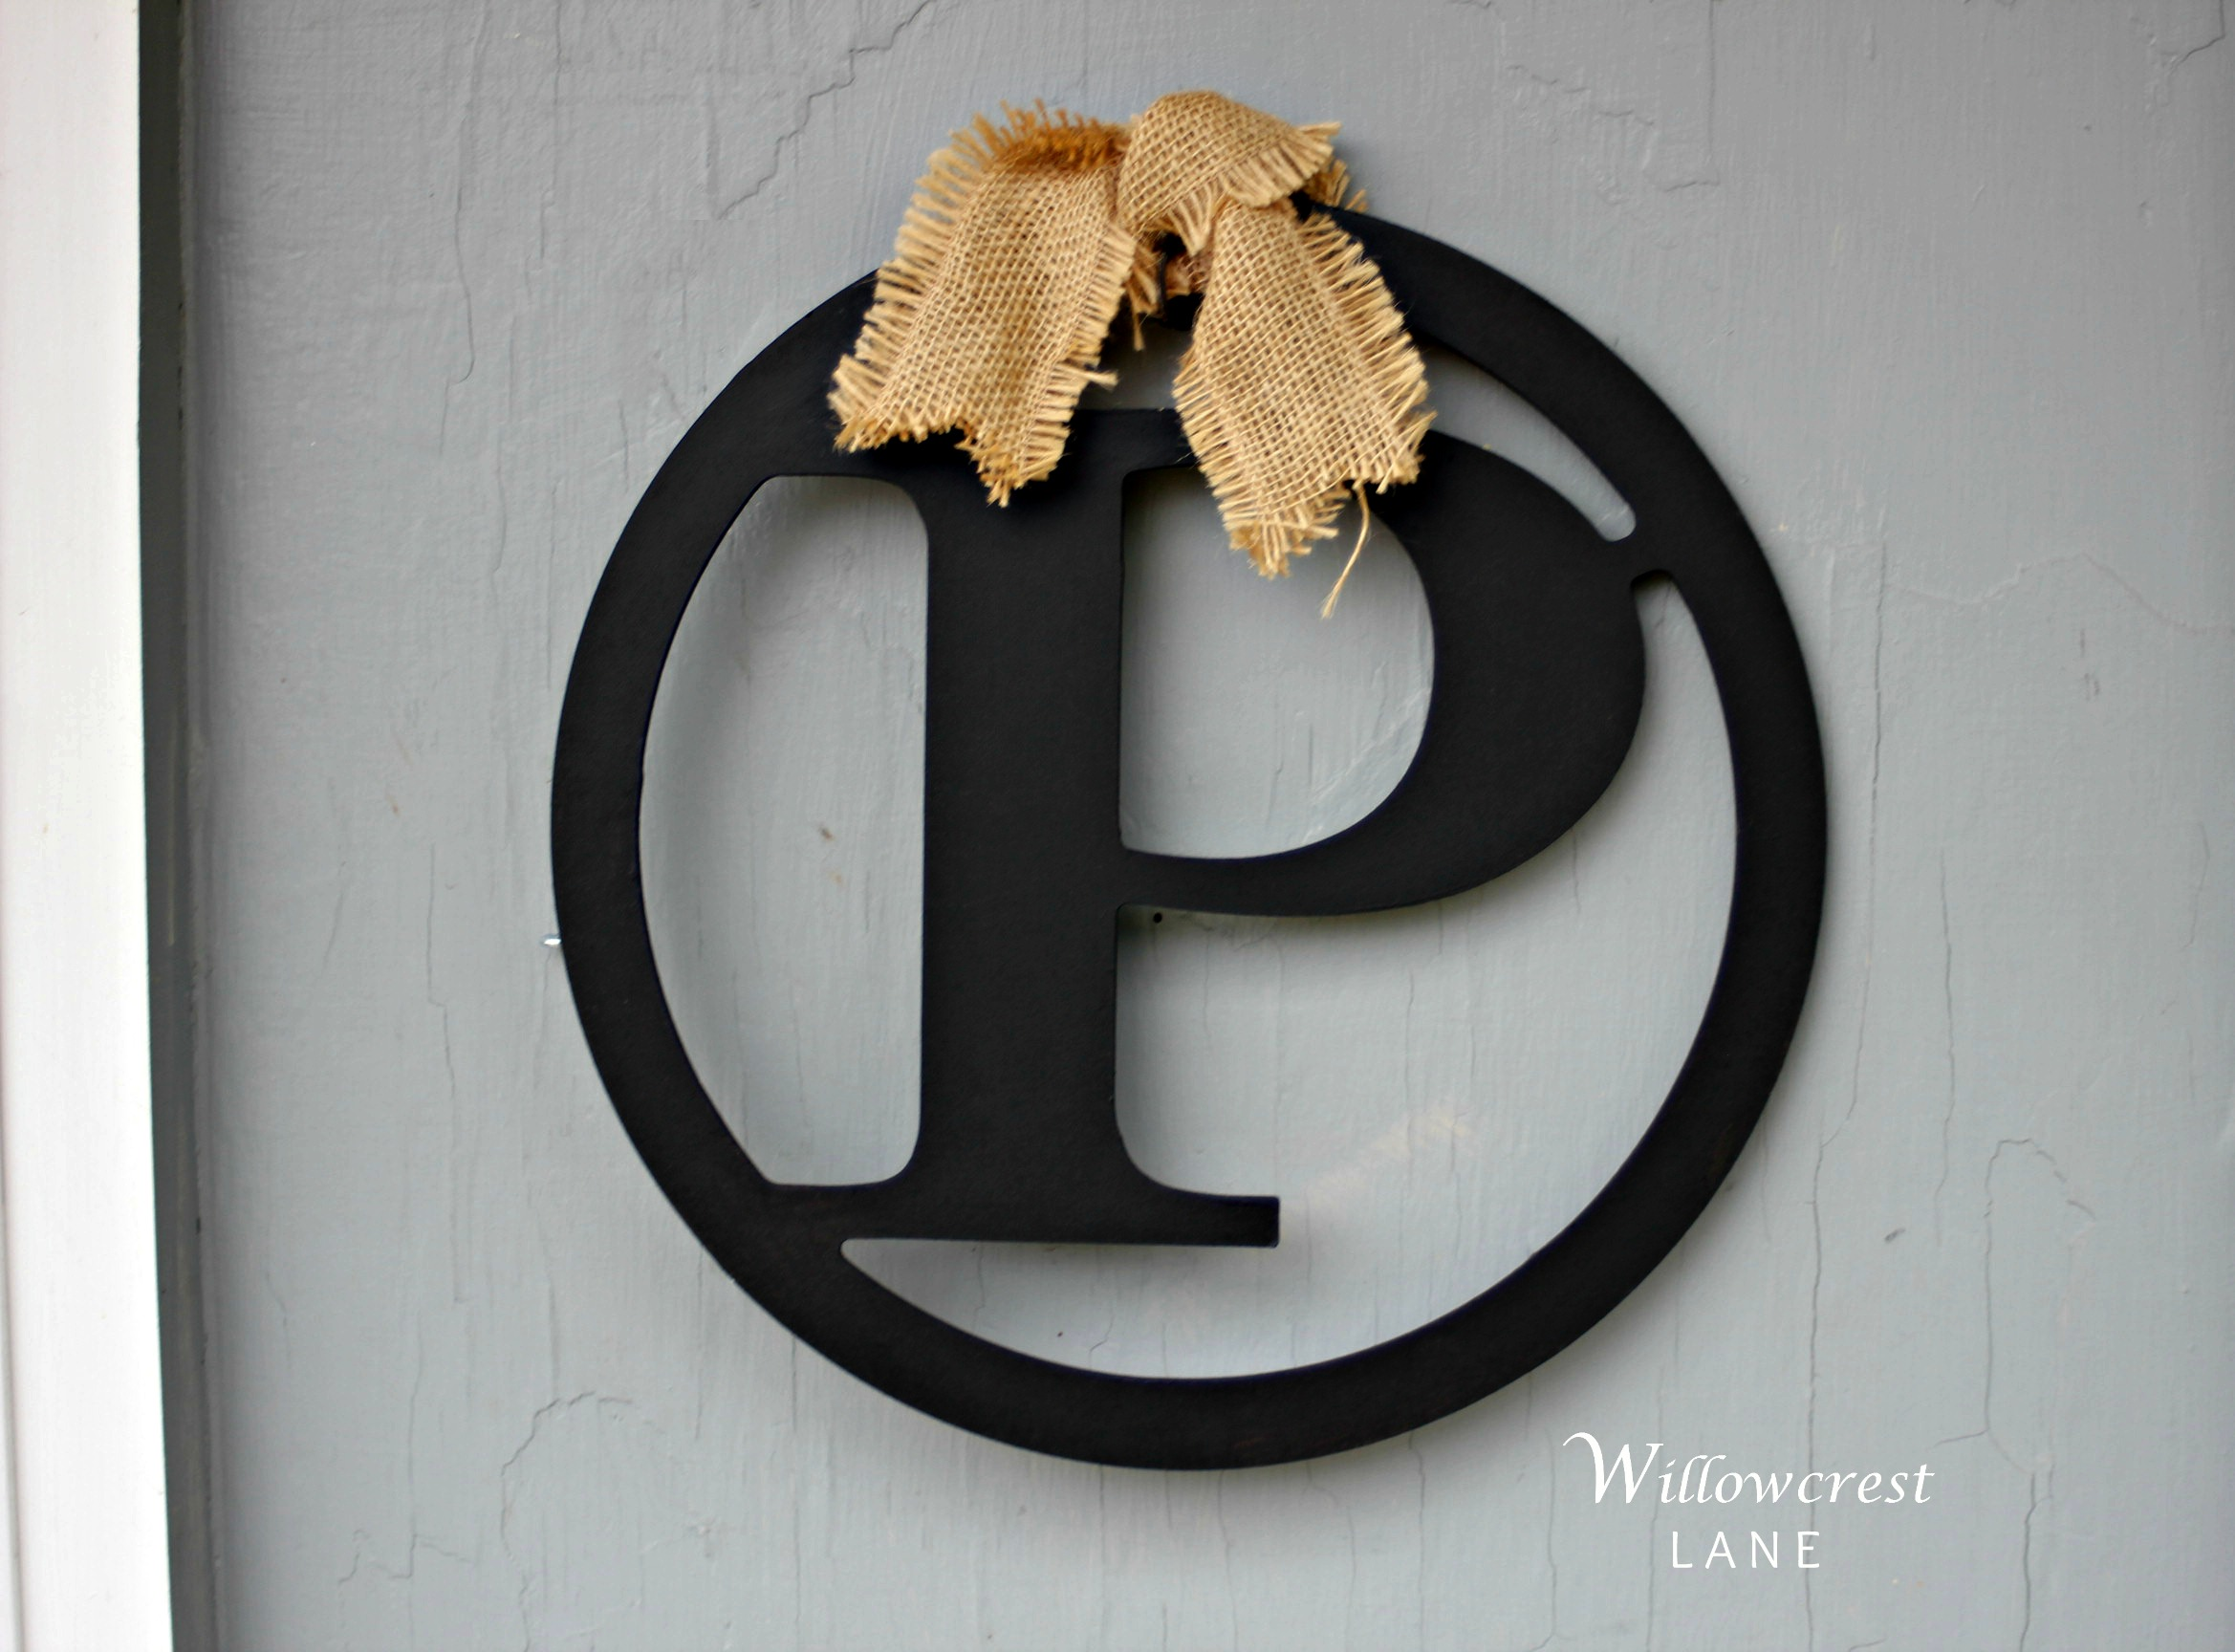 Quickest, easiest DIY project: monogram letter and some burlap. Done!